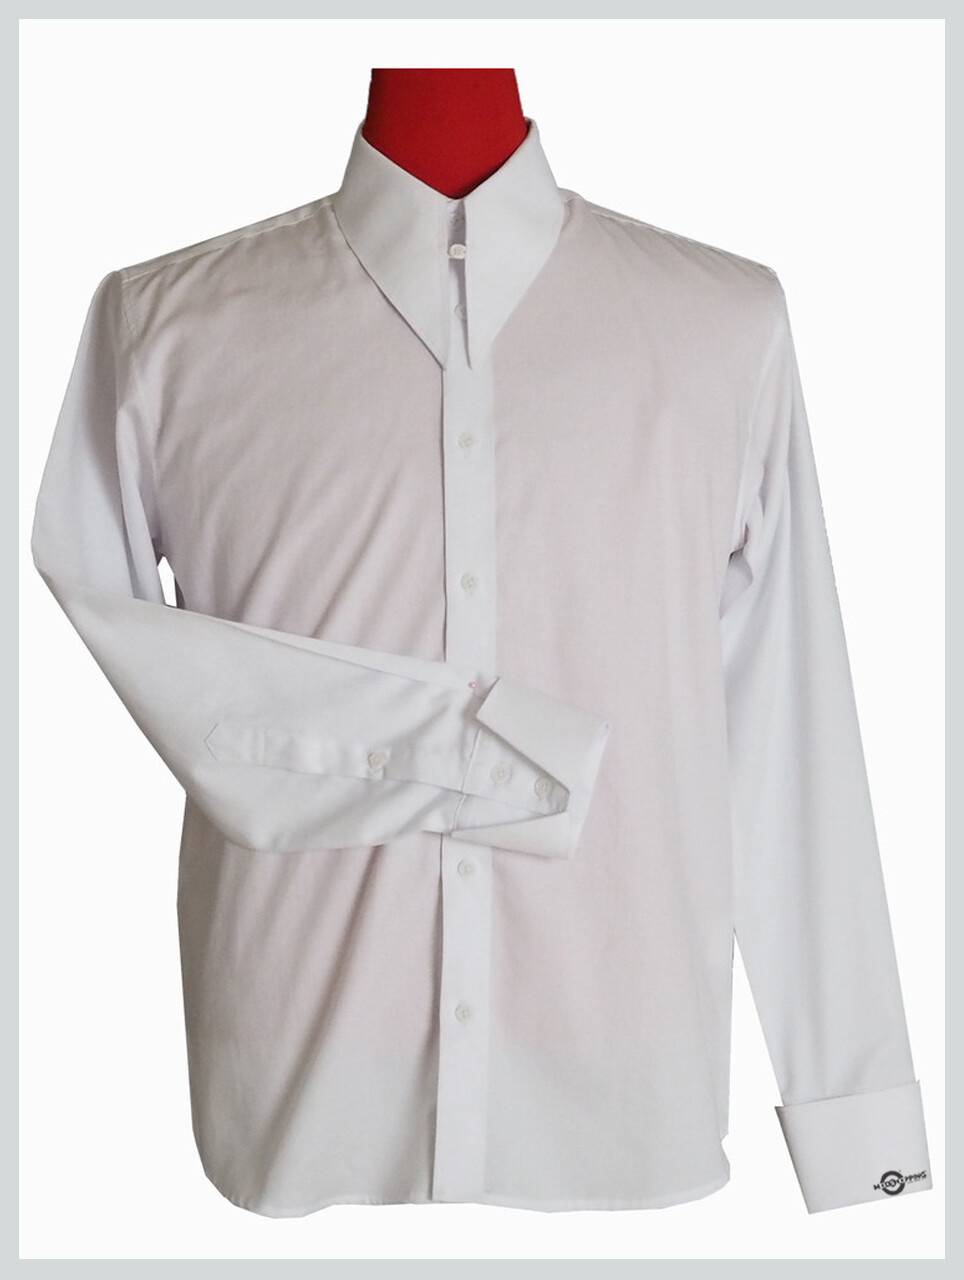 Spearpoint Collar 60'S Mod Style White Collar Shirt